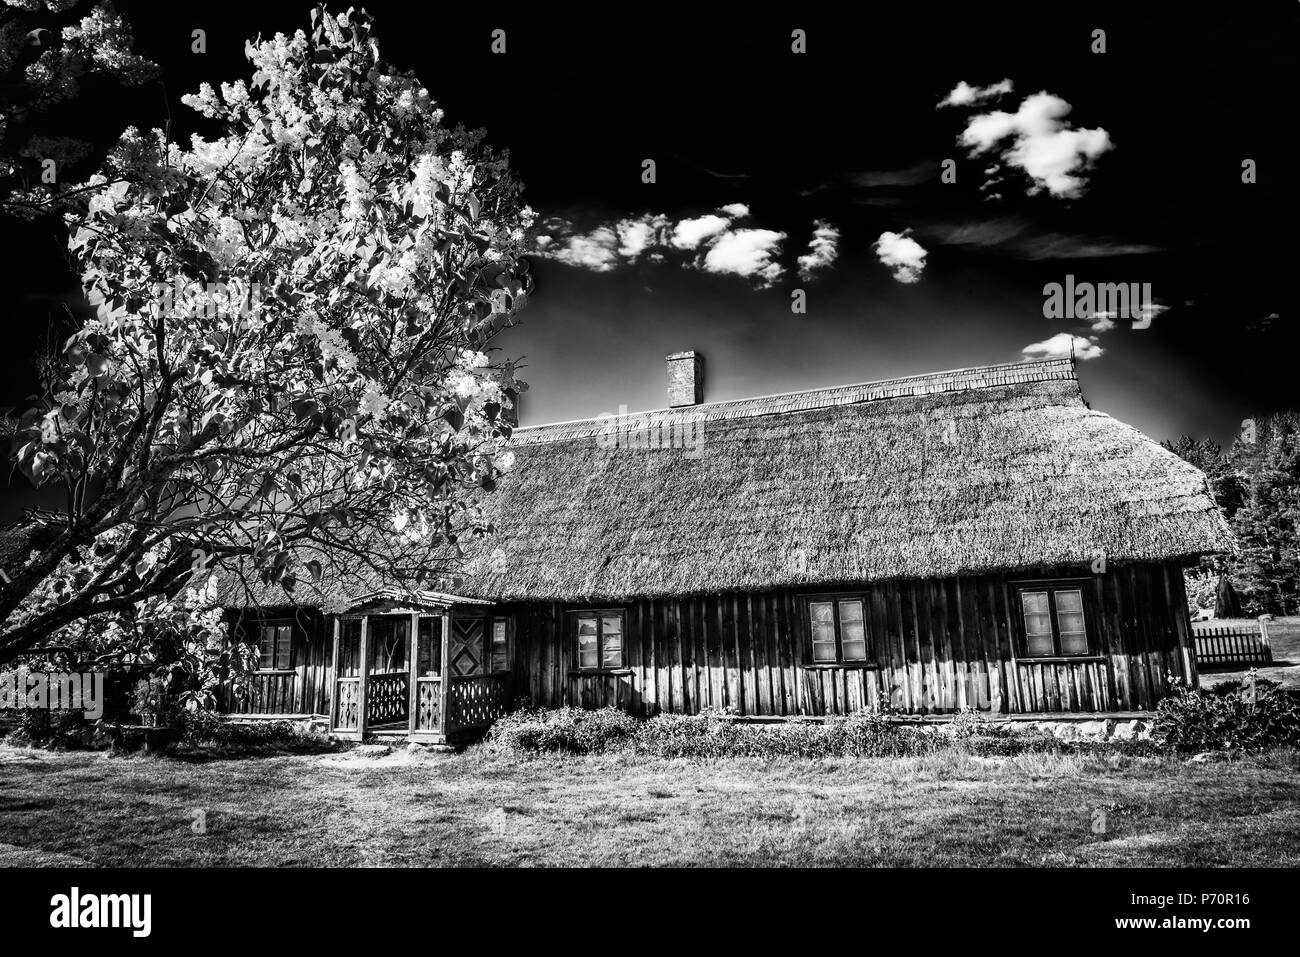 Old house in forest. Open-air ethnography museum in Latvia. - Stock Image